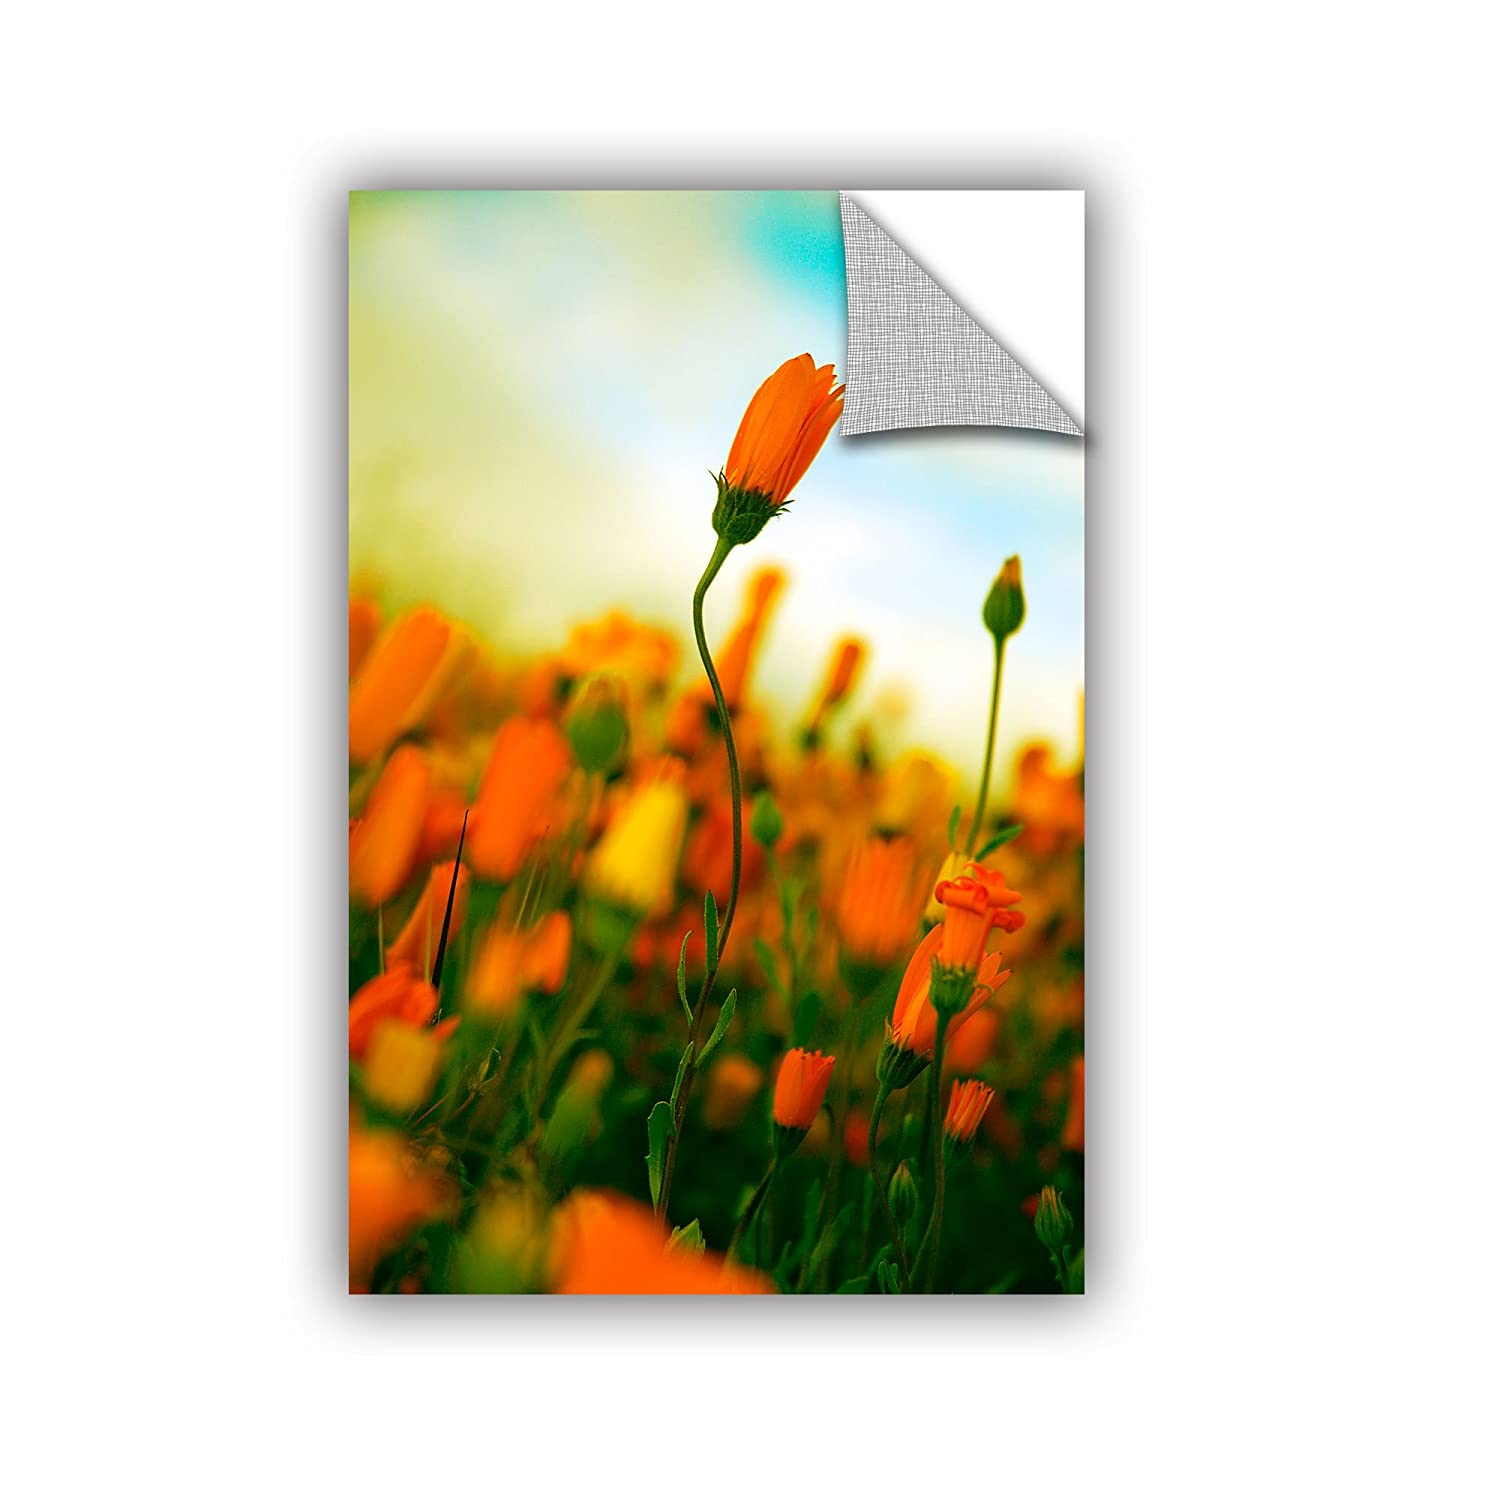 24 x 36 ArtWall Elana Rays African Daisy Appealz Removable Graphic Wall Art Multicolor